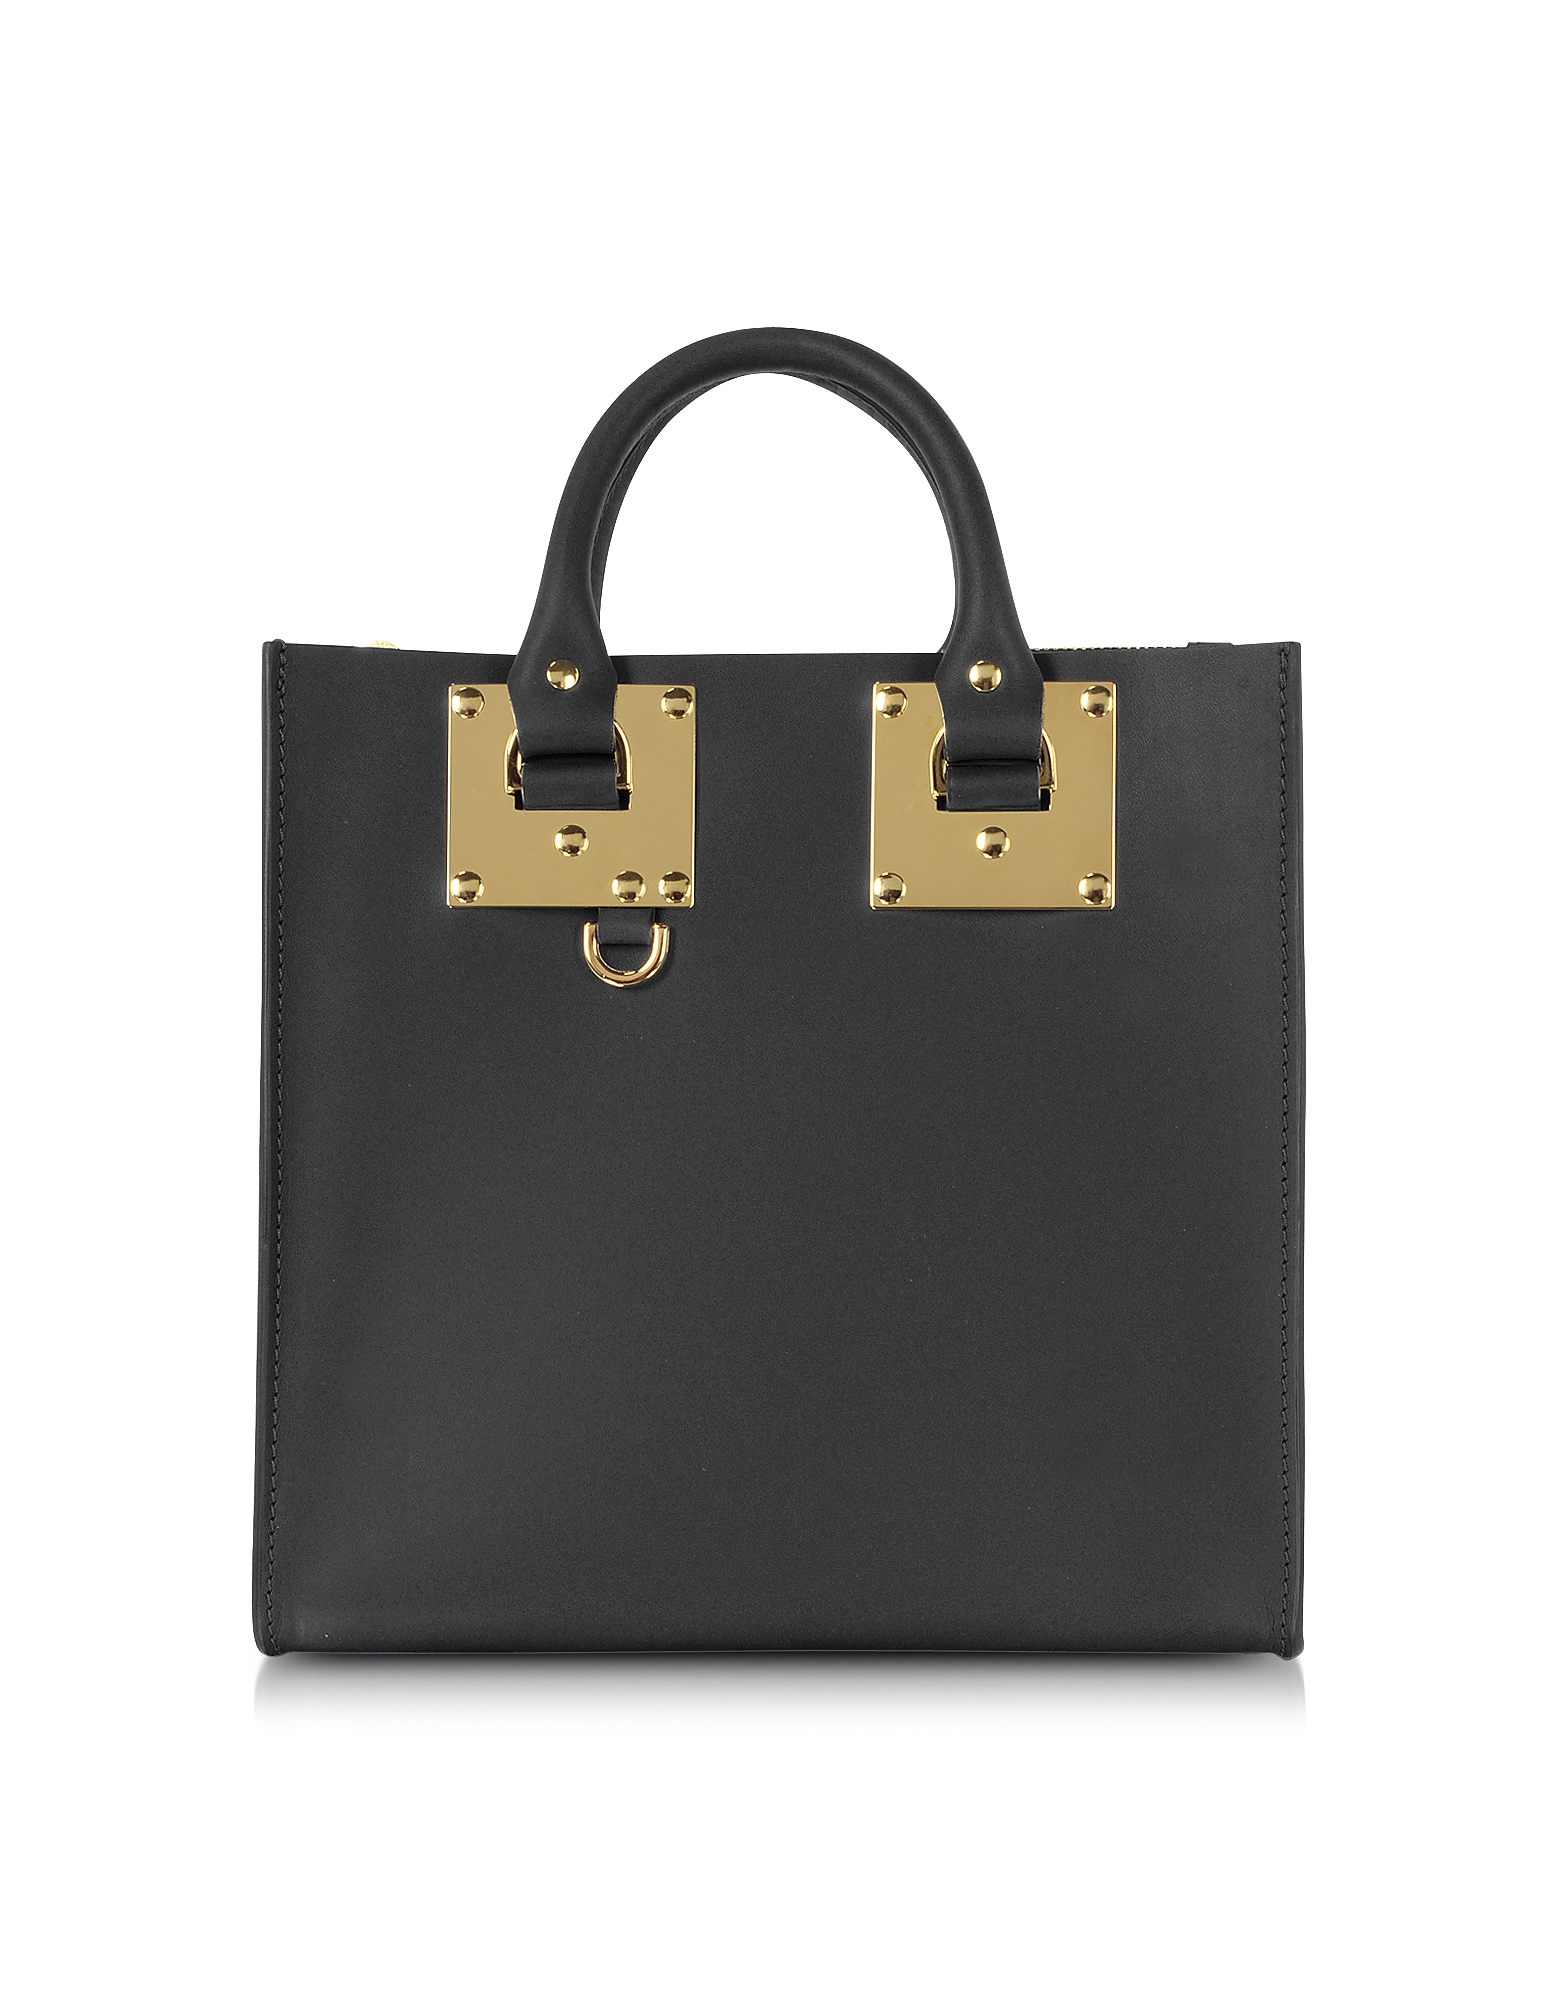 Image of Sophie Hulme Designer Handbags, Black Albion Square Leather Tote